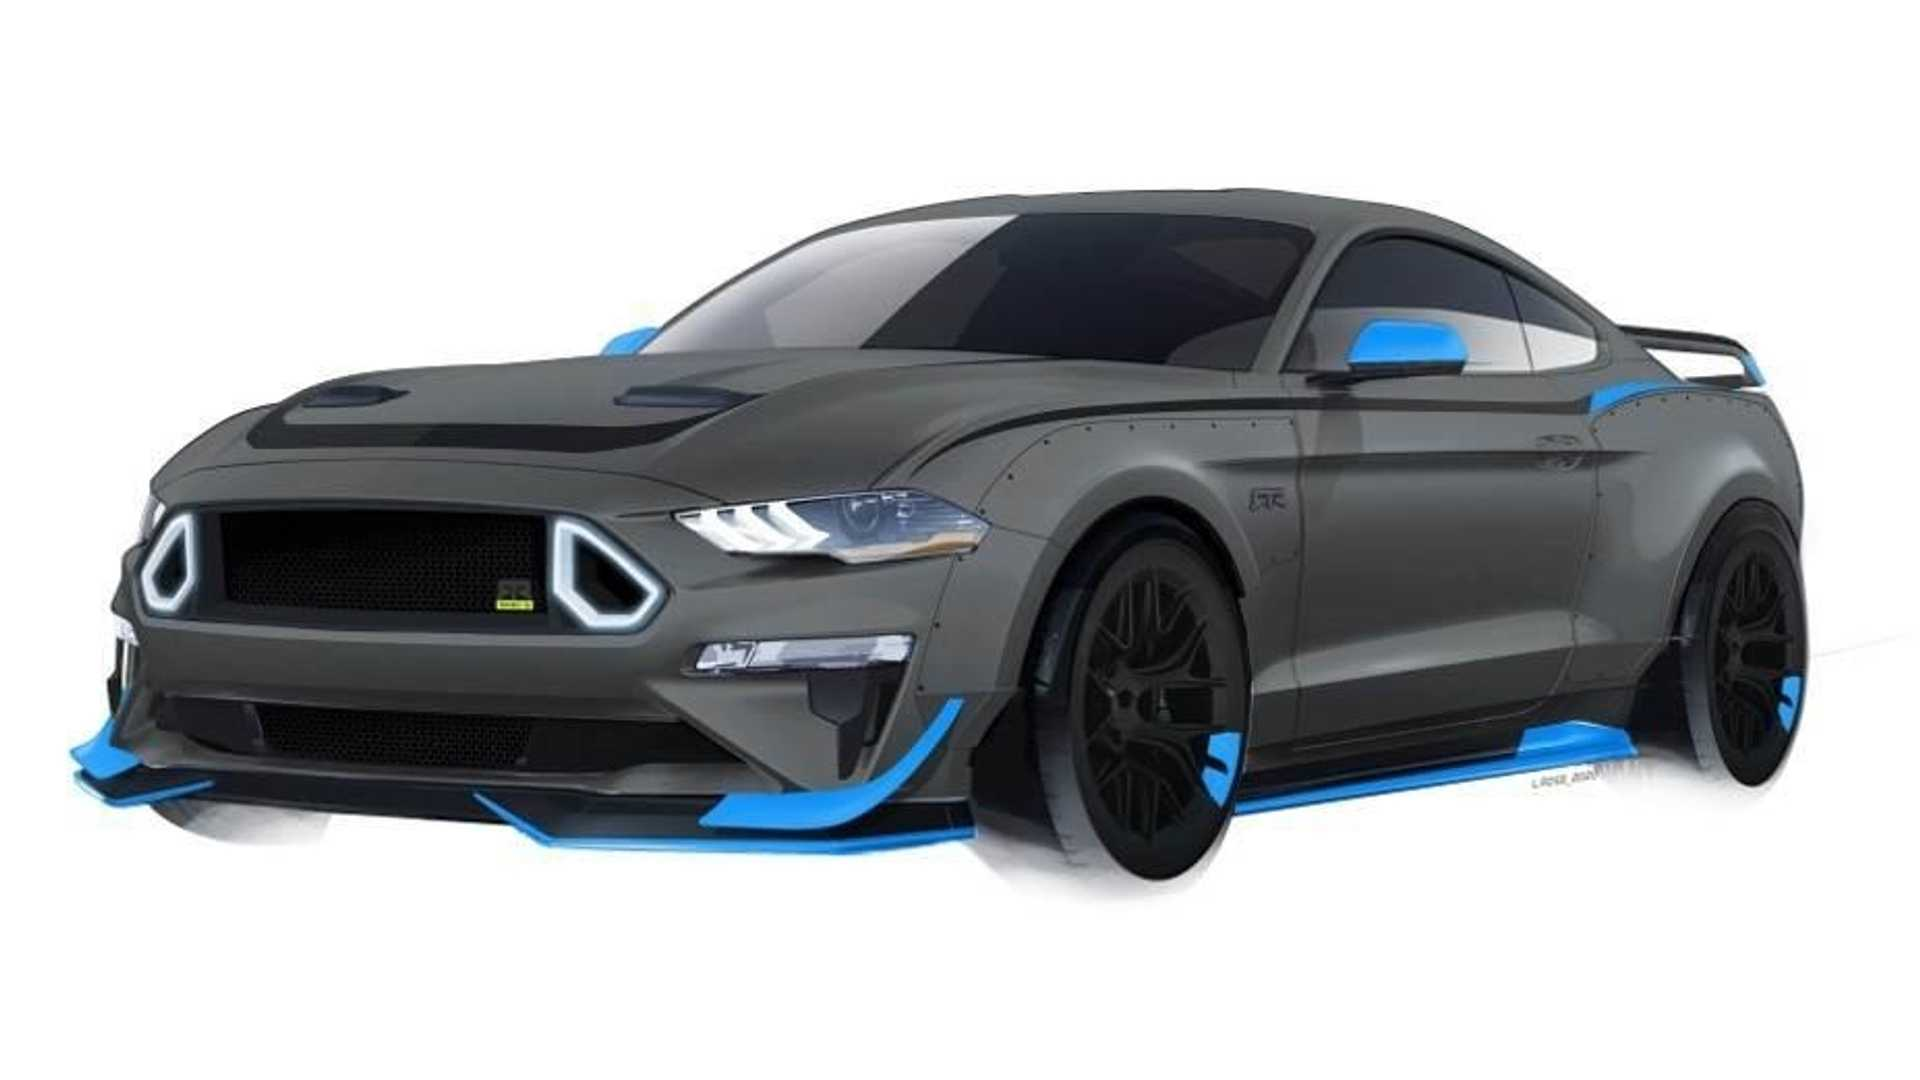 rtr-10th-anniversary-mustang-spec-5-1